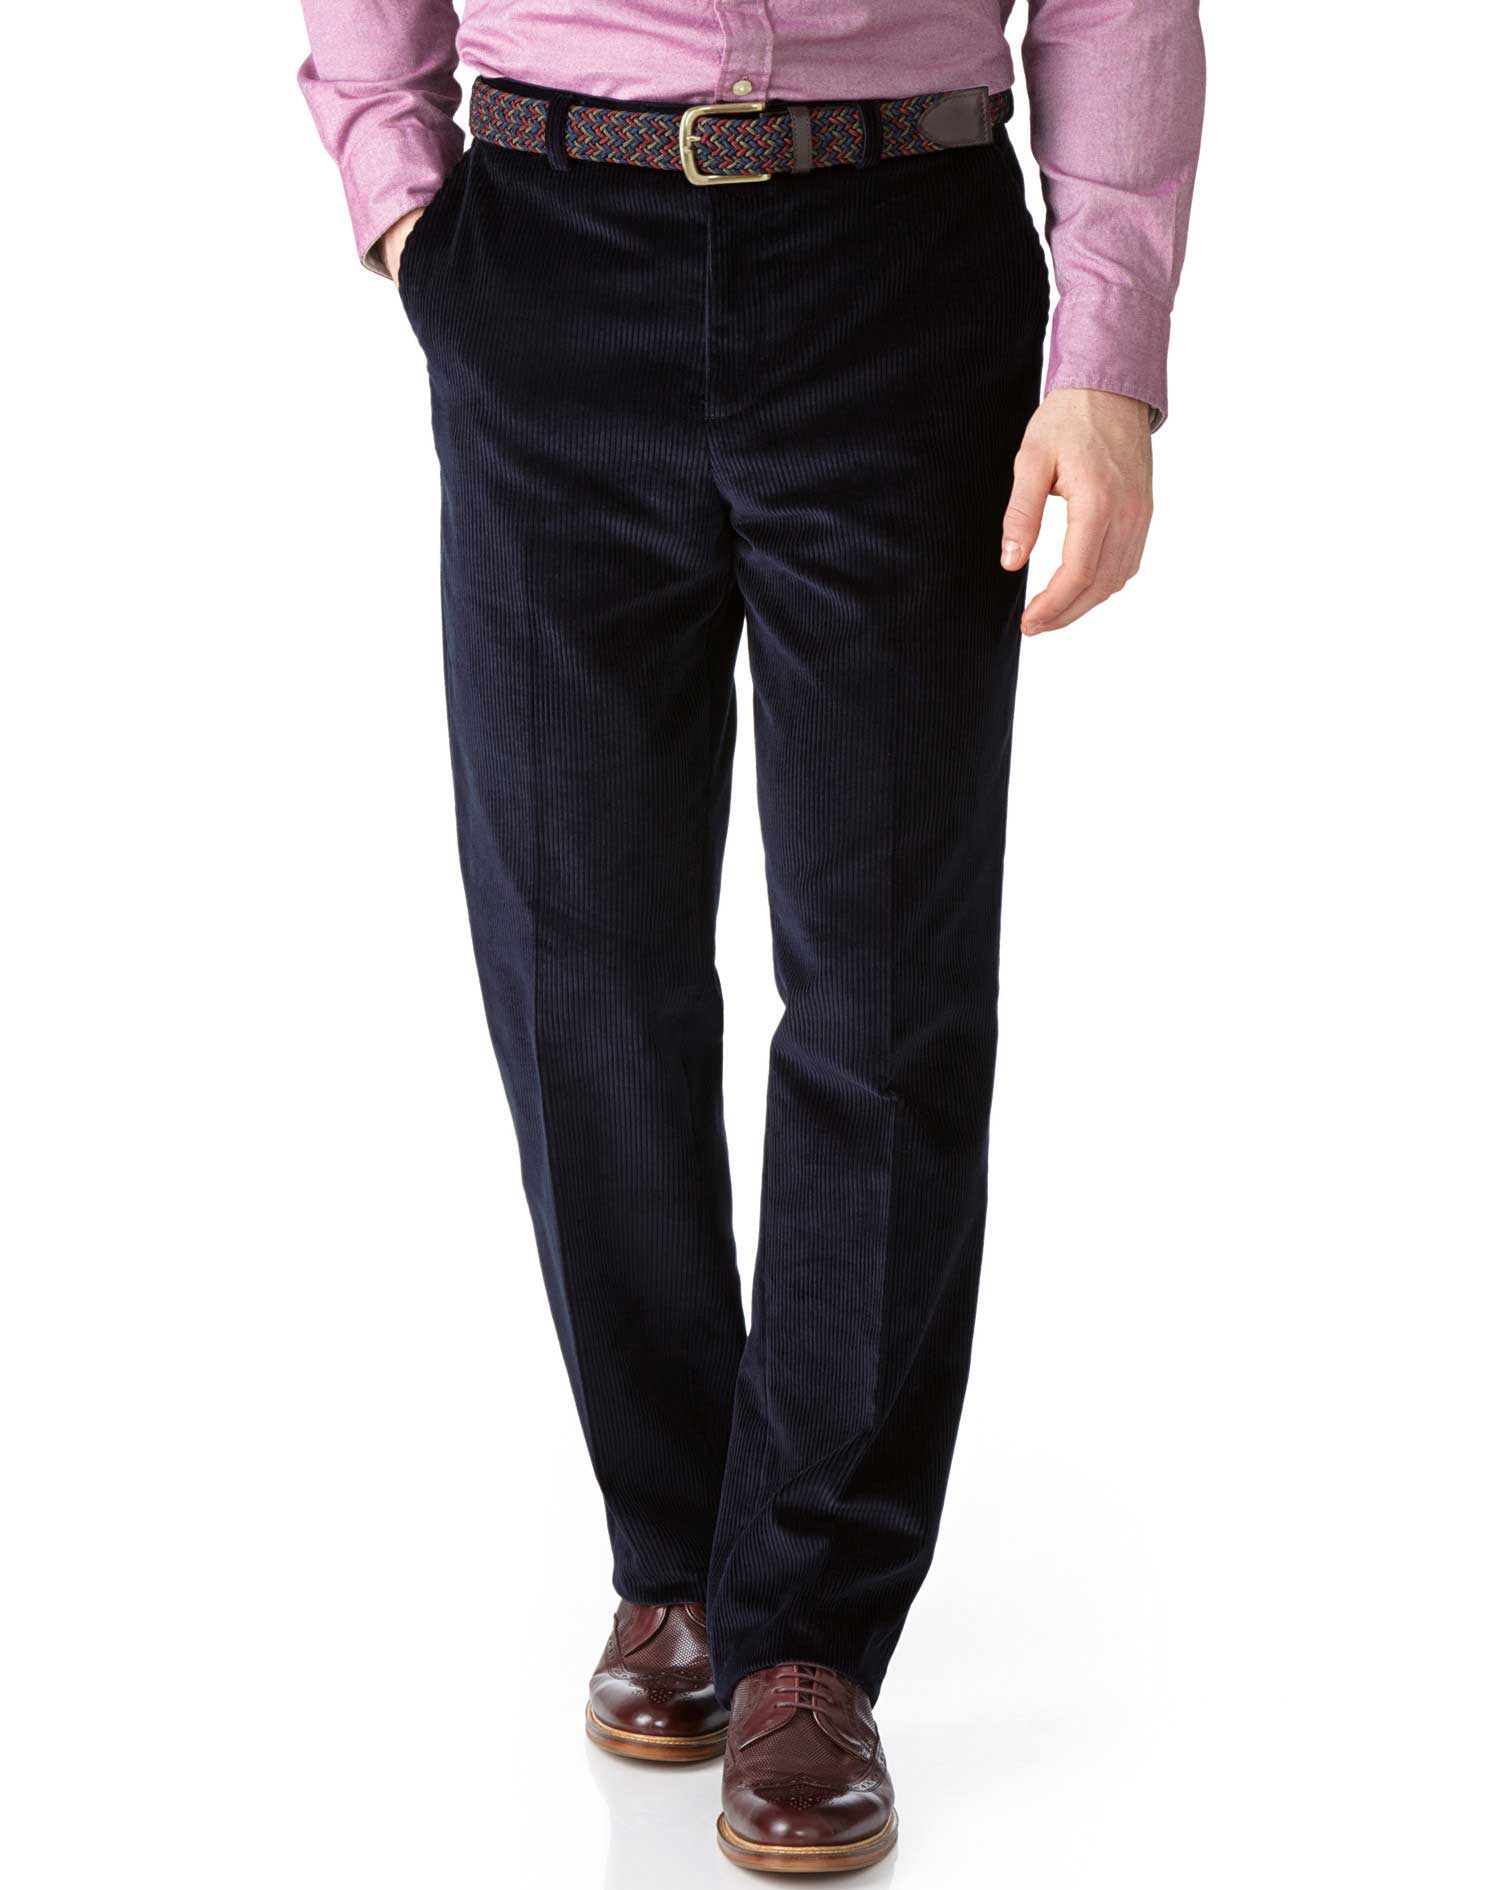 Navy Classic Fit Jumbo Cord Trousers Size W34 L30 by Charles Tyrwhitt